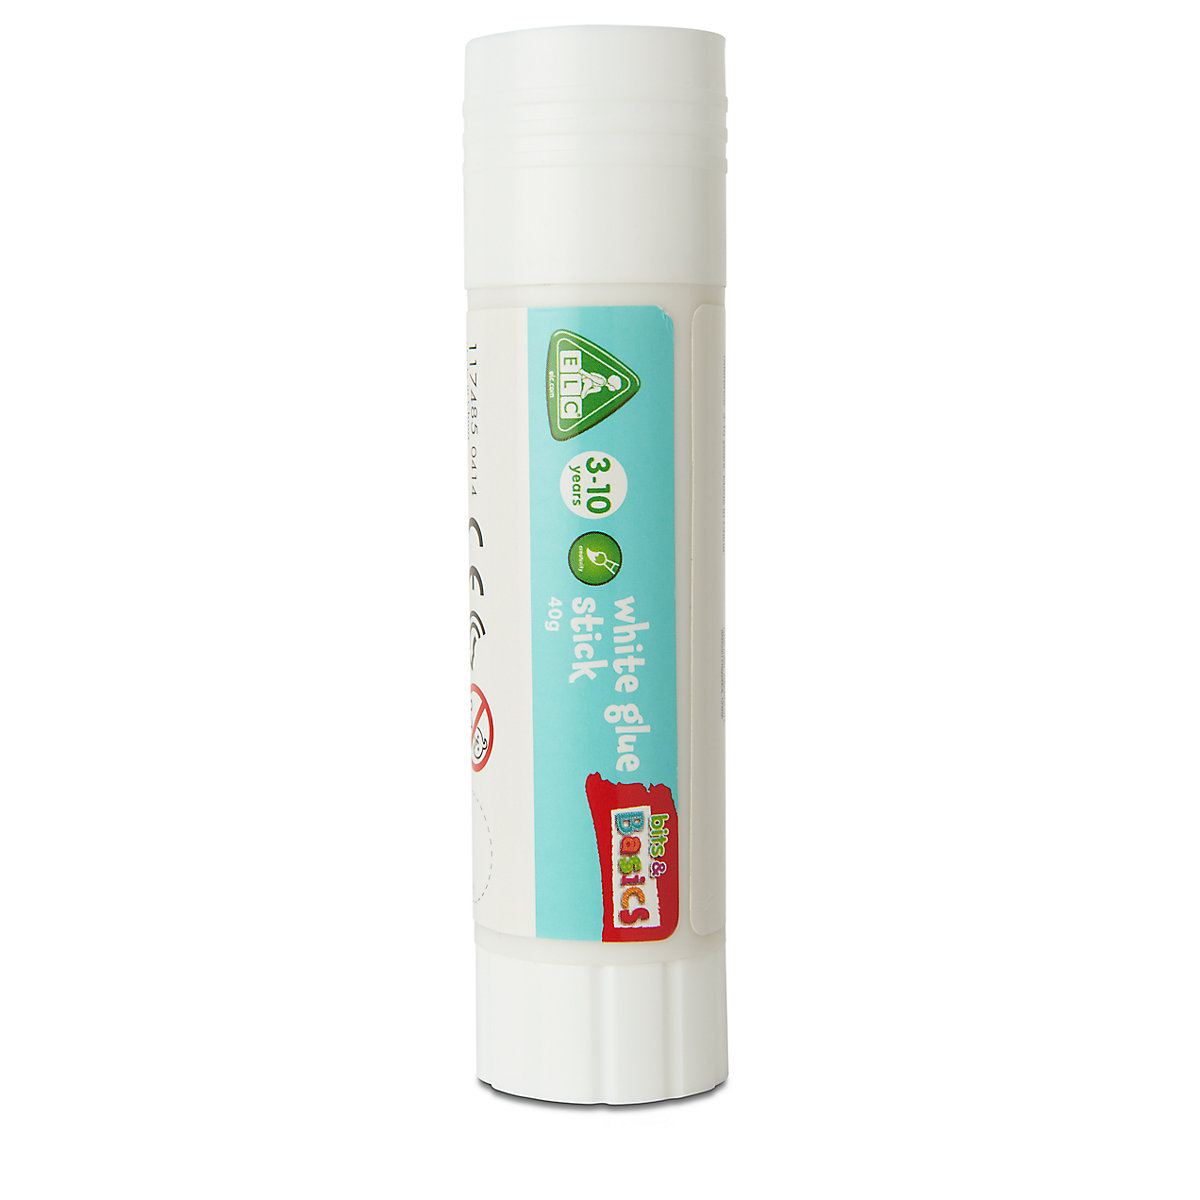 New ELC Boys and Girls Glue Stick - White Toy From 3 years - Early Learning Centre Gifts